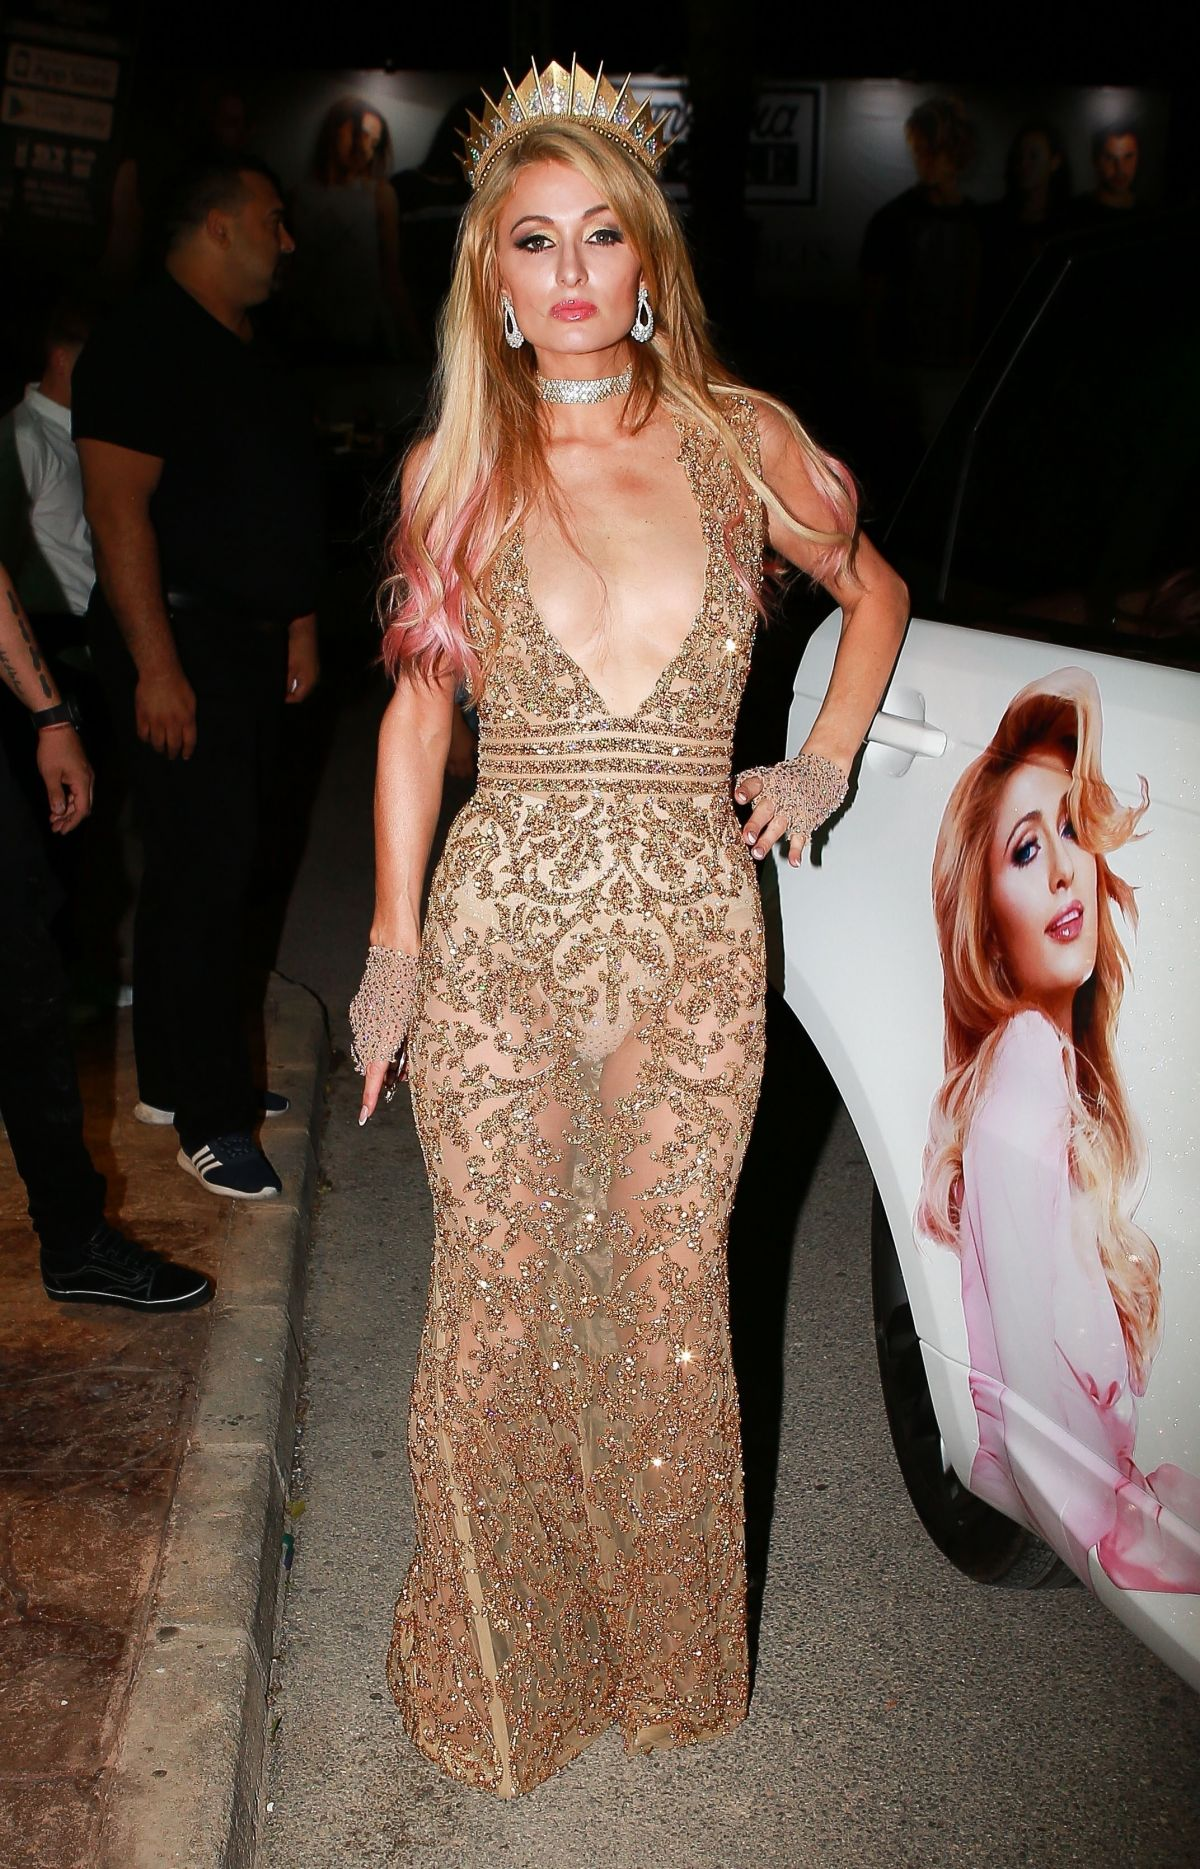 Paris hilton at night out in ibiza celebzz celebzz - Paris hilton ibiza ...